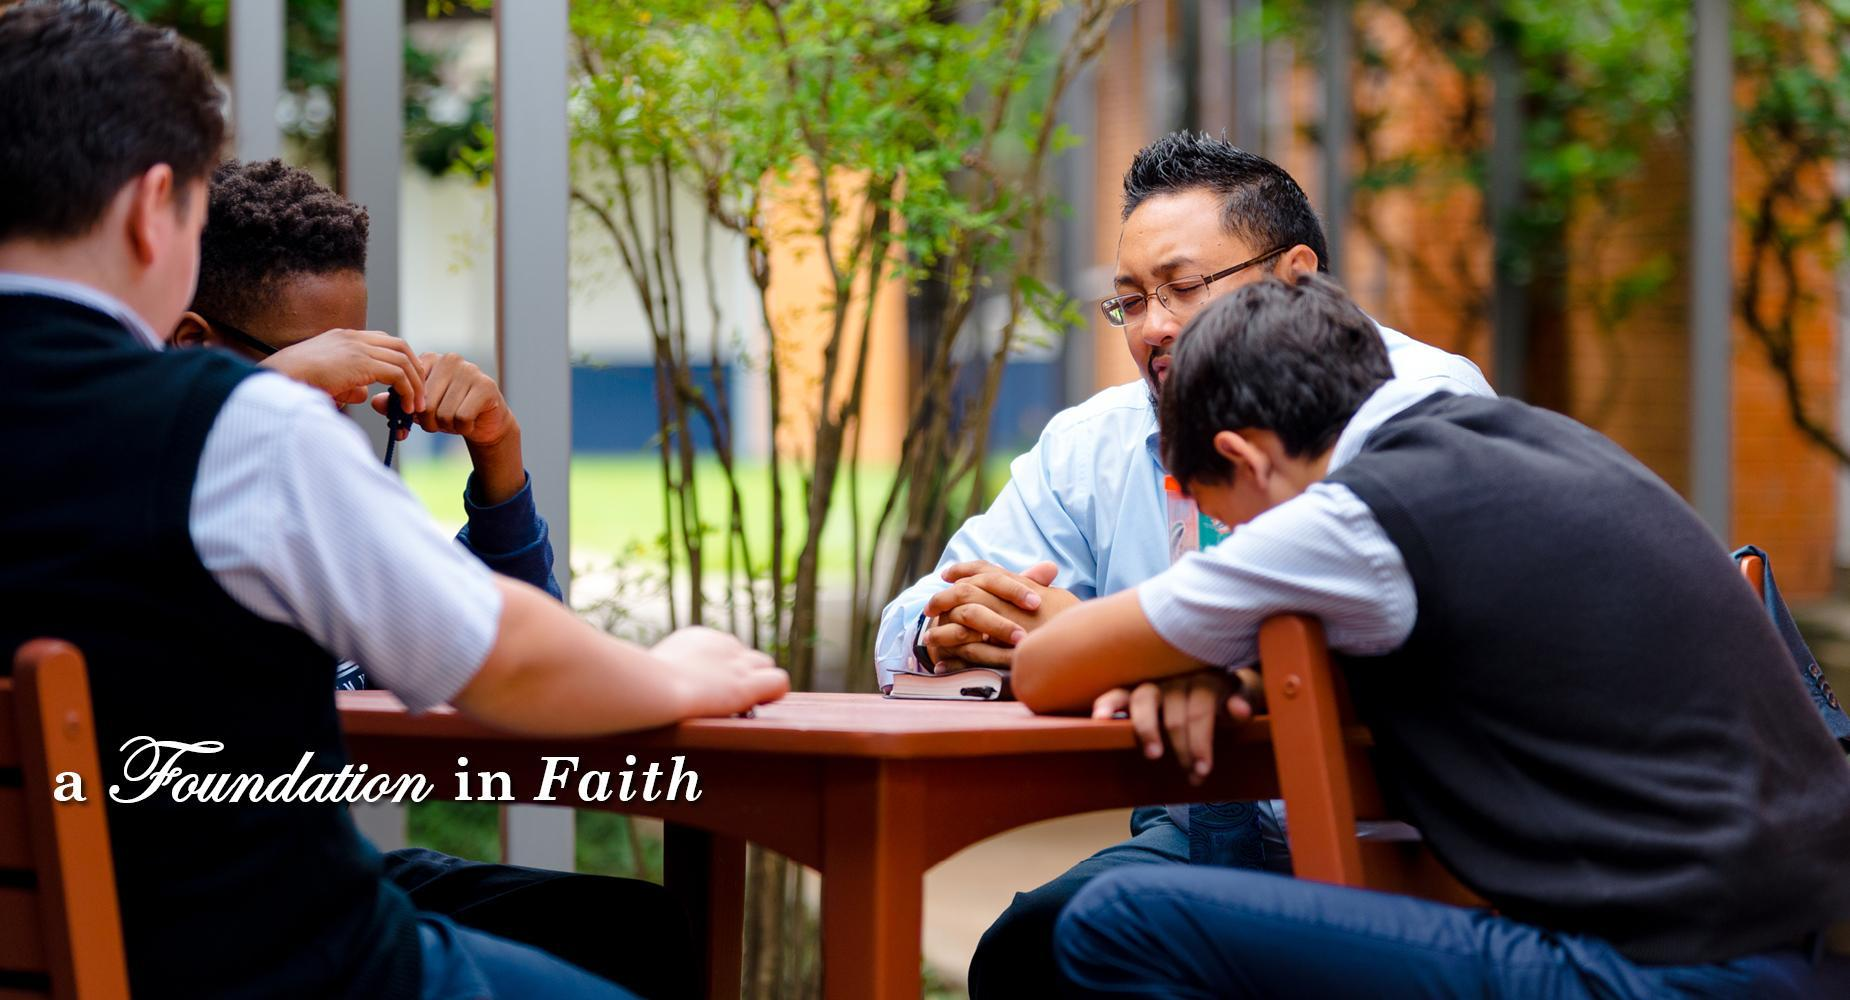 a foundation in faith with students and teacher praying together